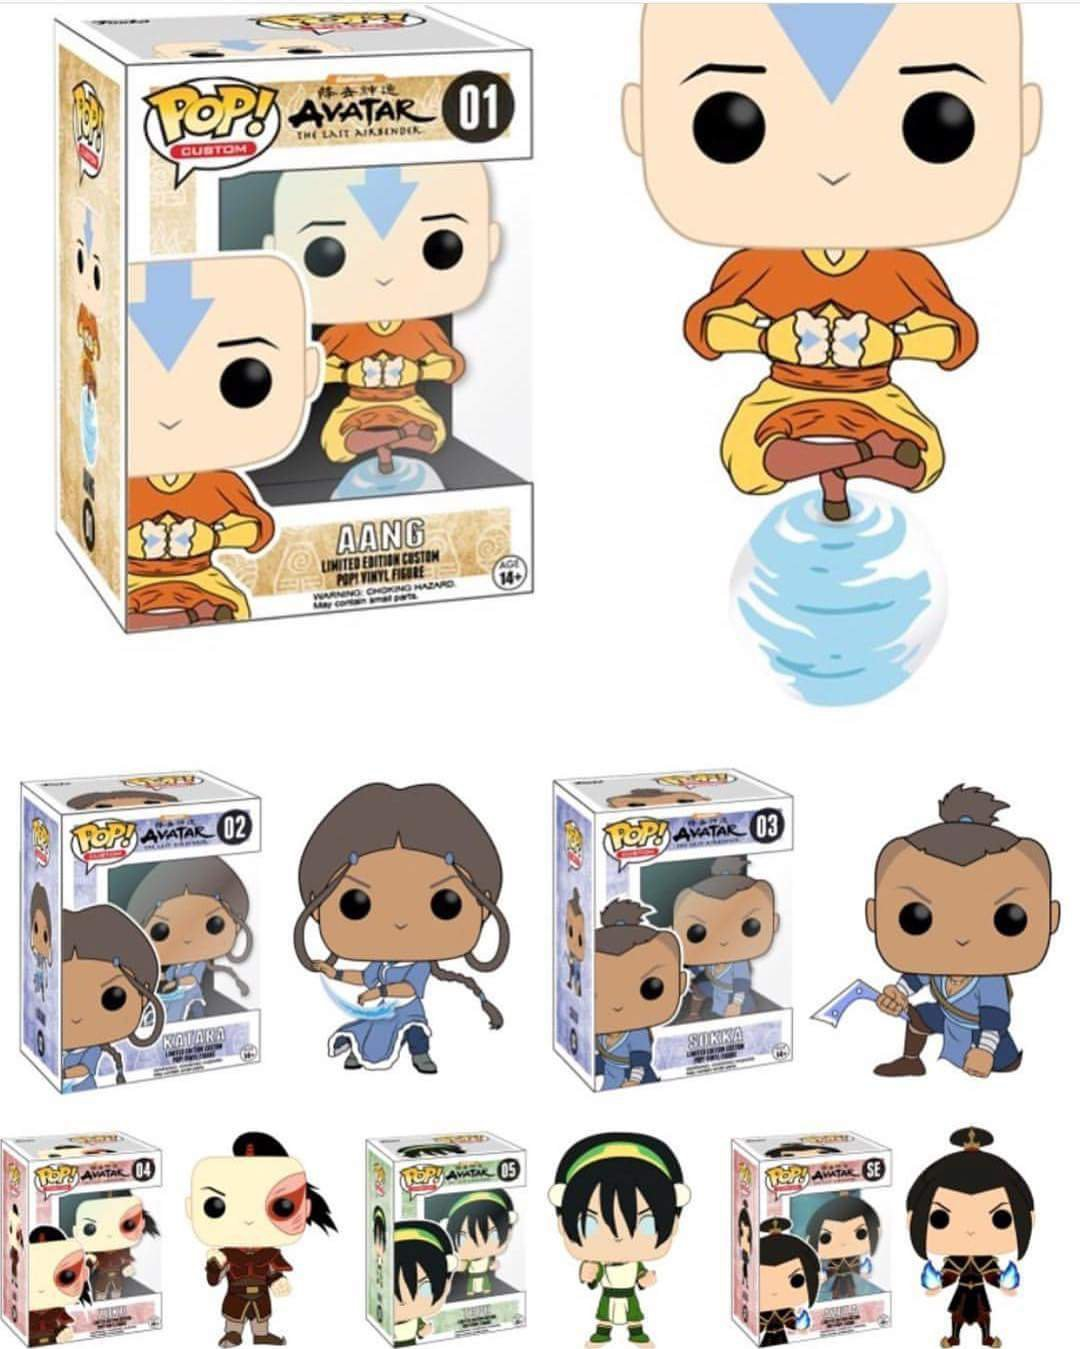 Avatar 2 Release Date: Unconfirmed Avatar: The Last Airbender Funko Pops Surface